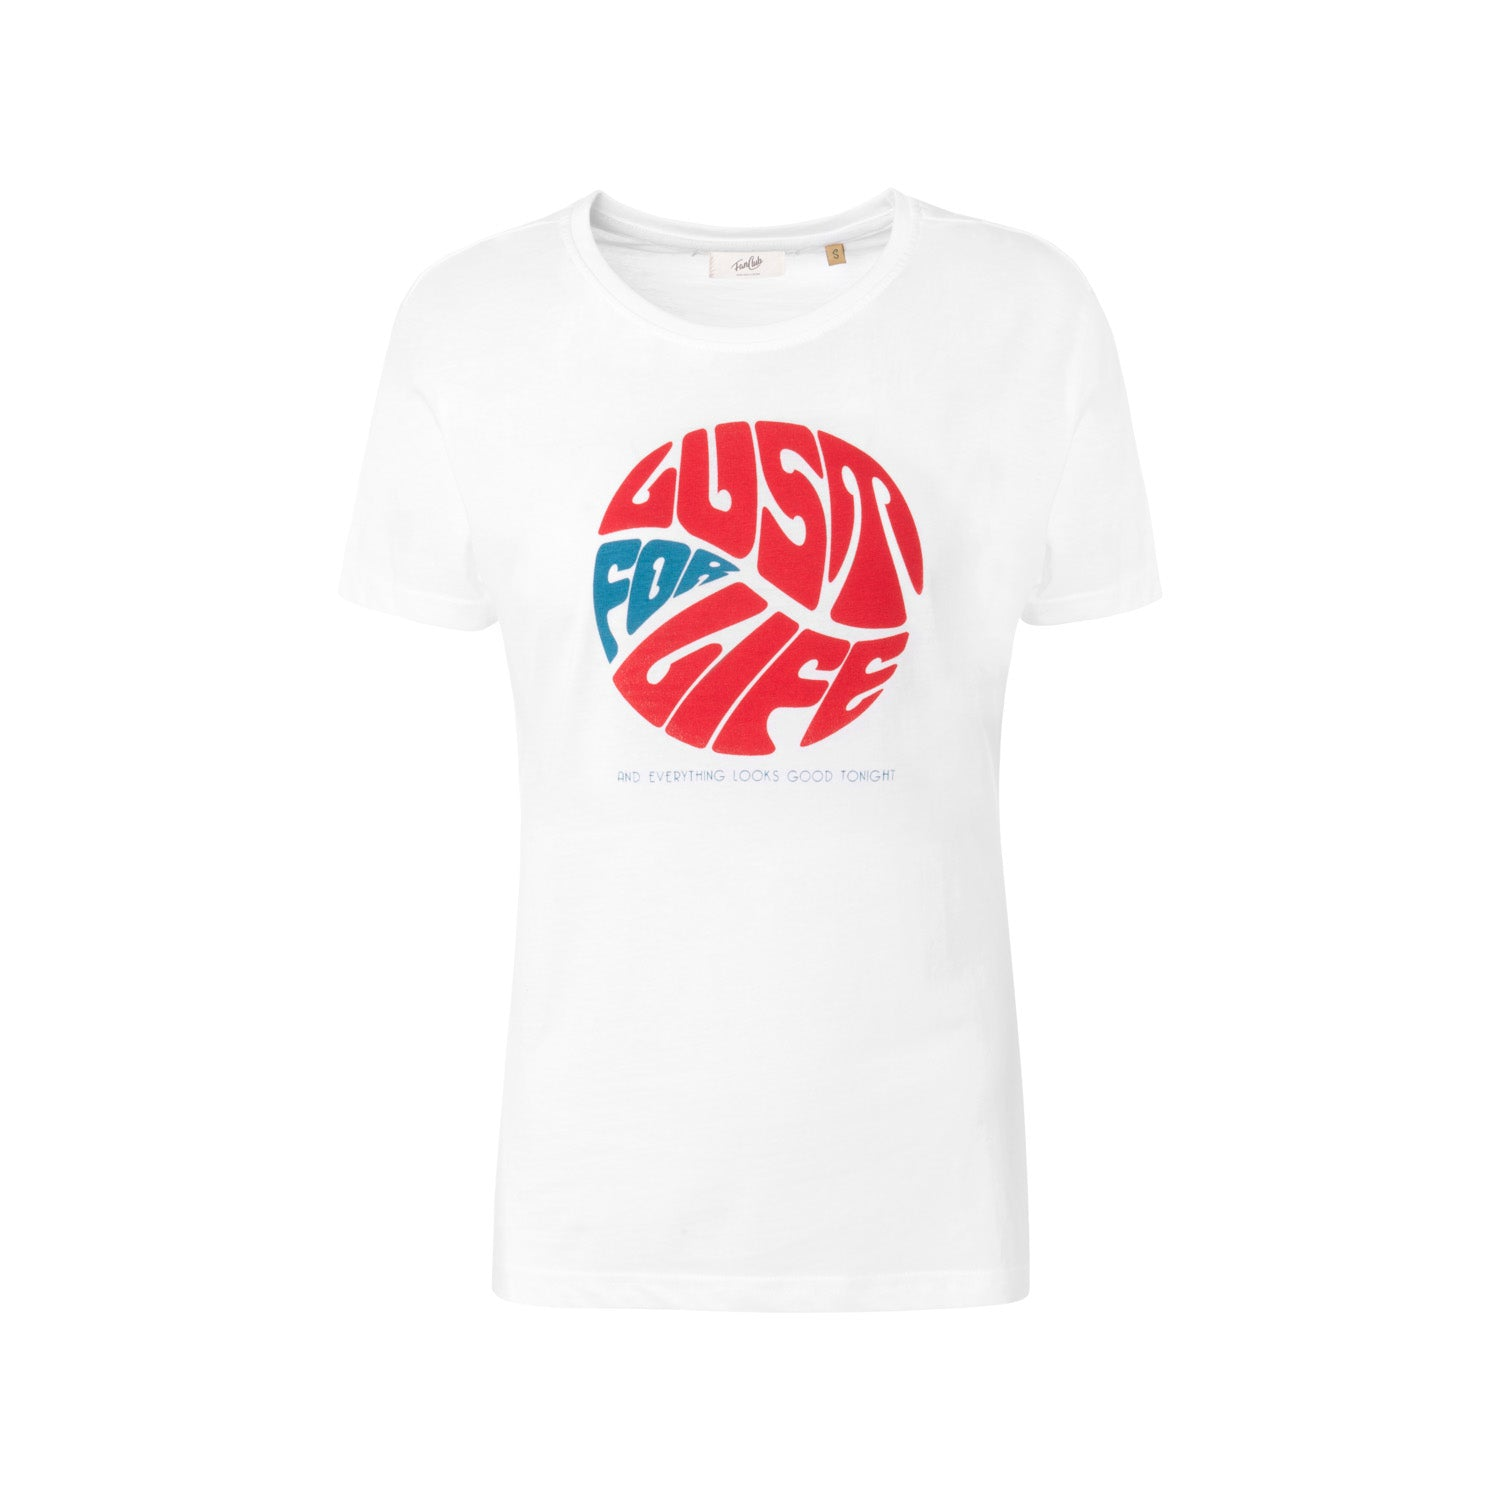 Lust for life retro slogan t-shirt